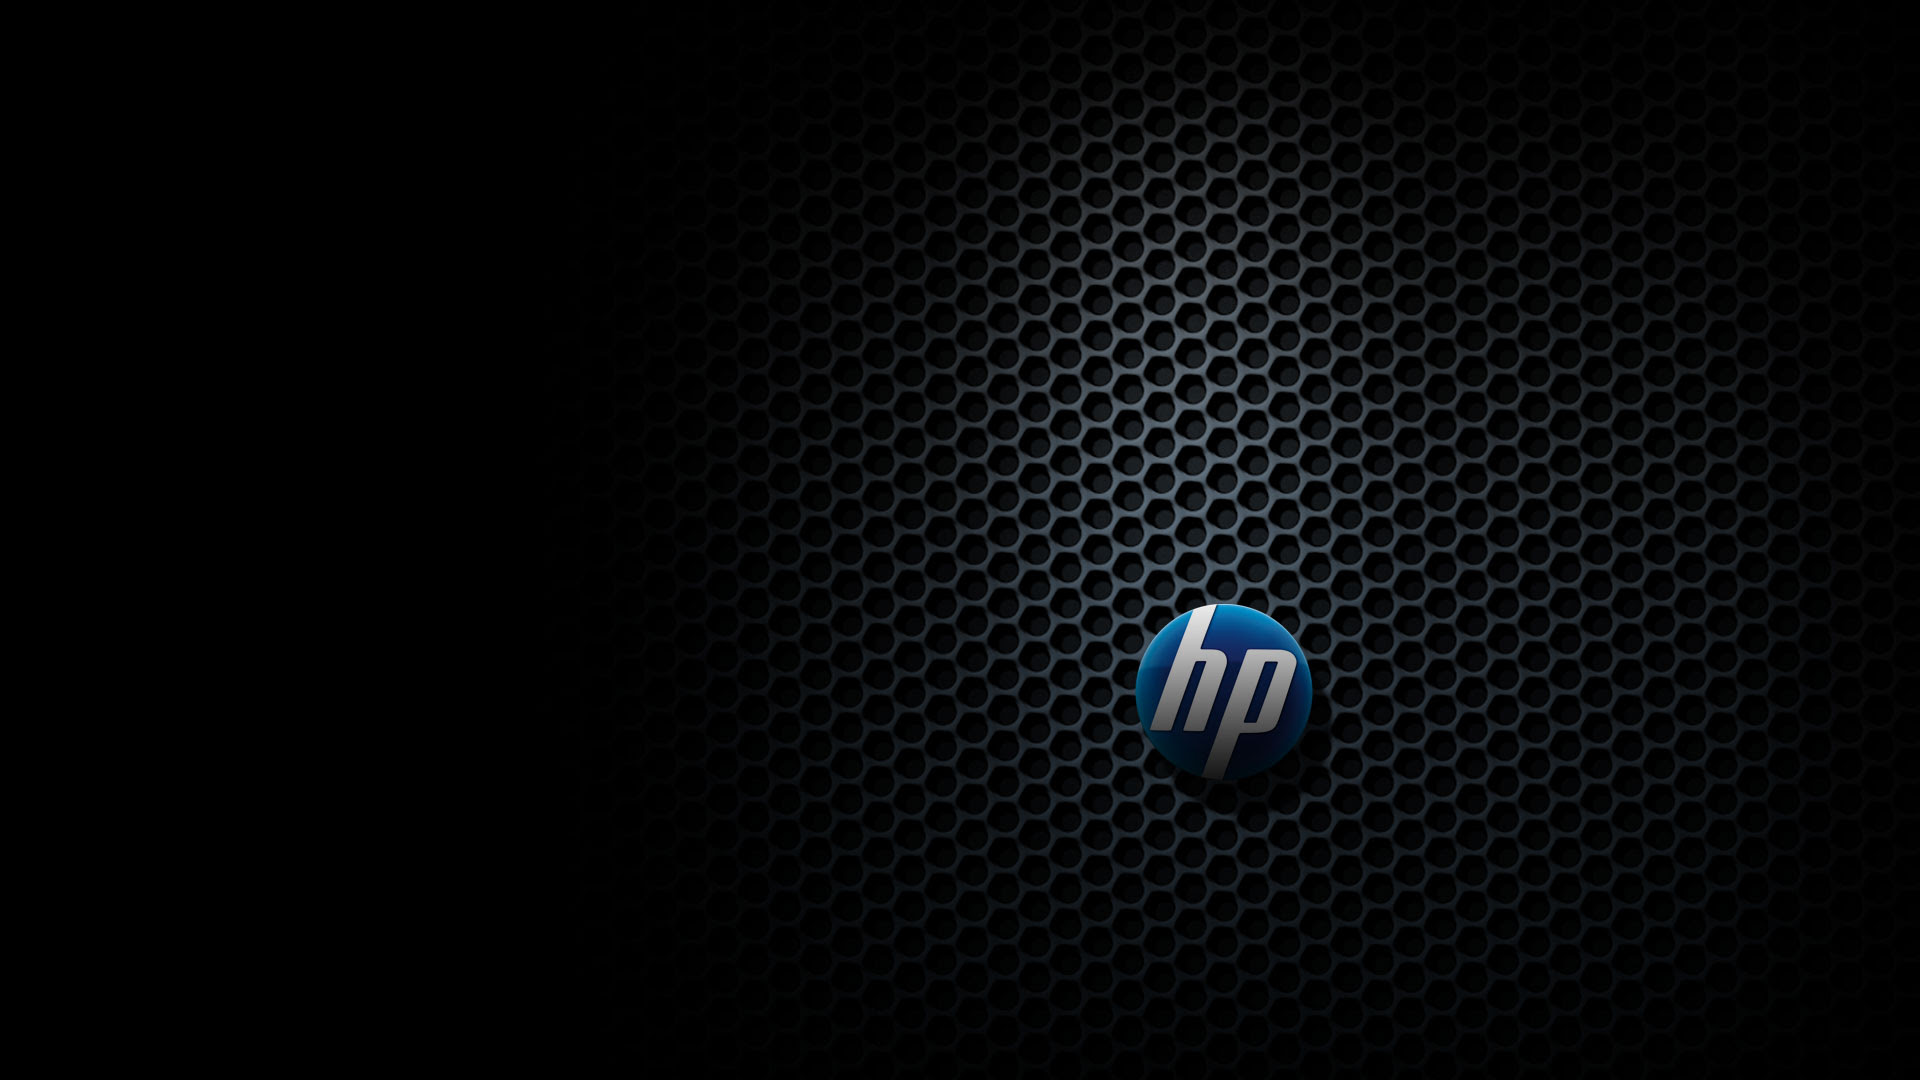 Hp Wallpapers Black Background Hp Wallpapers 20814